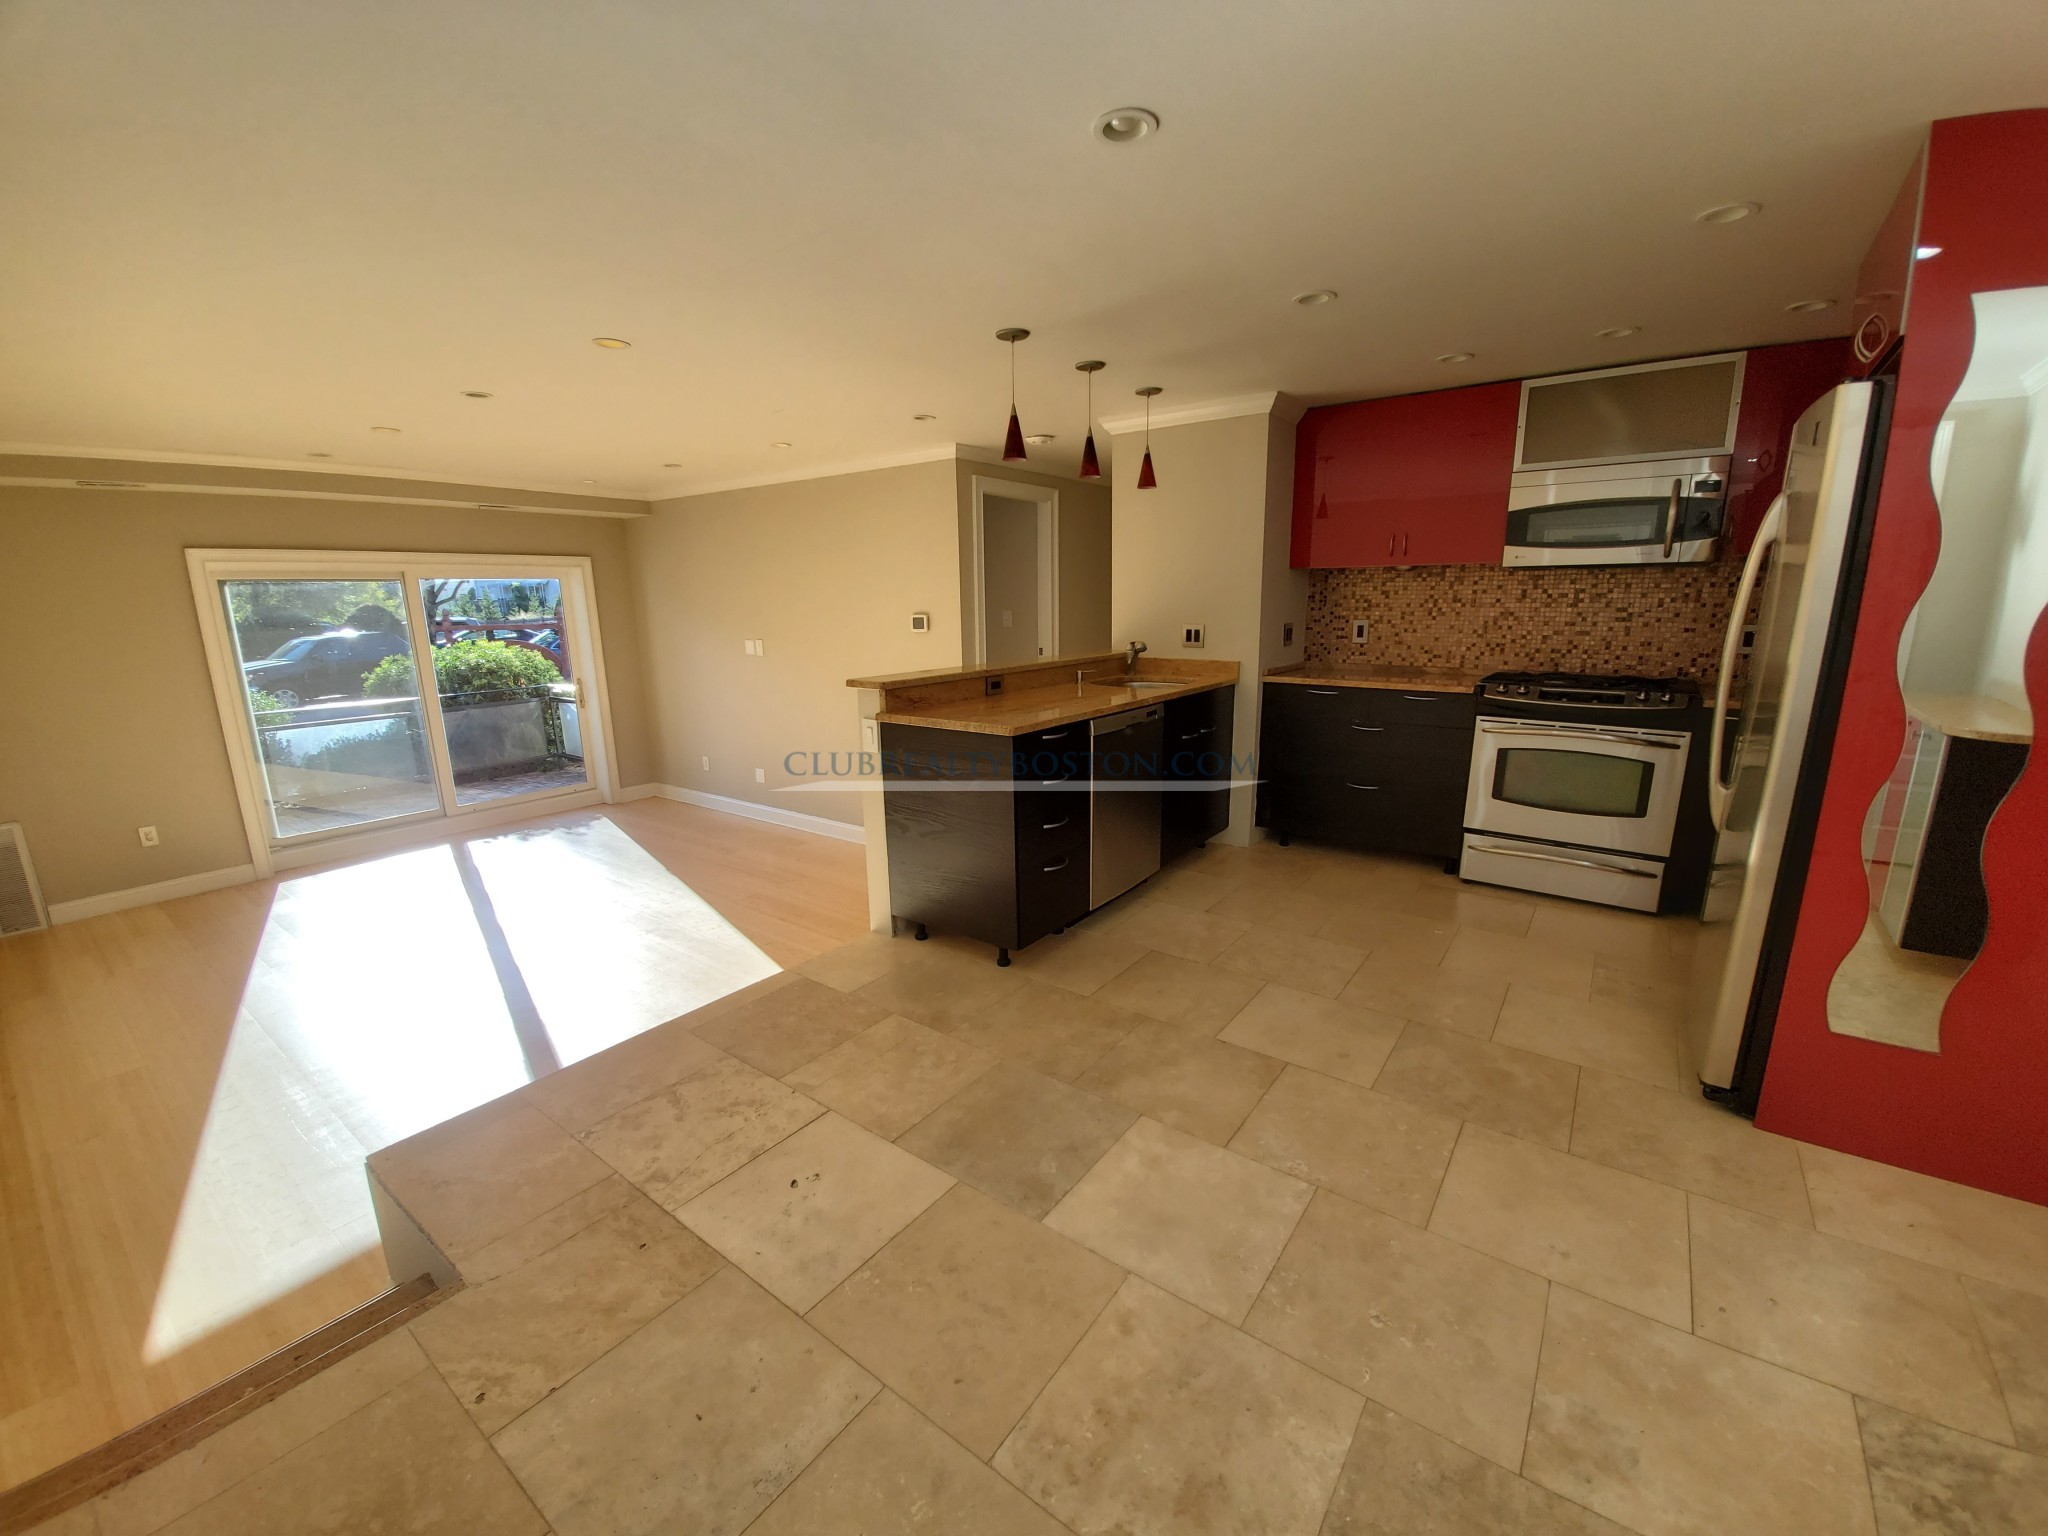 2 Beds, 1 Bath apartment in Newton, Chestnut Hill for $2,400